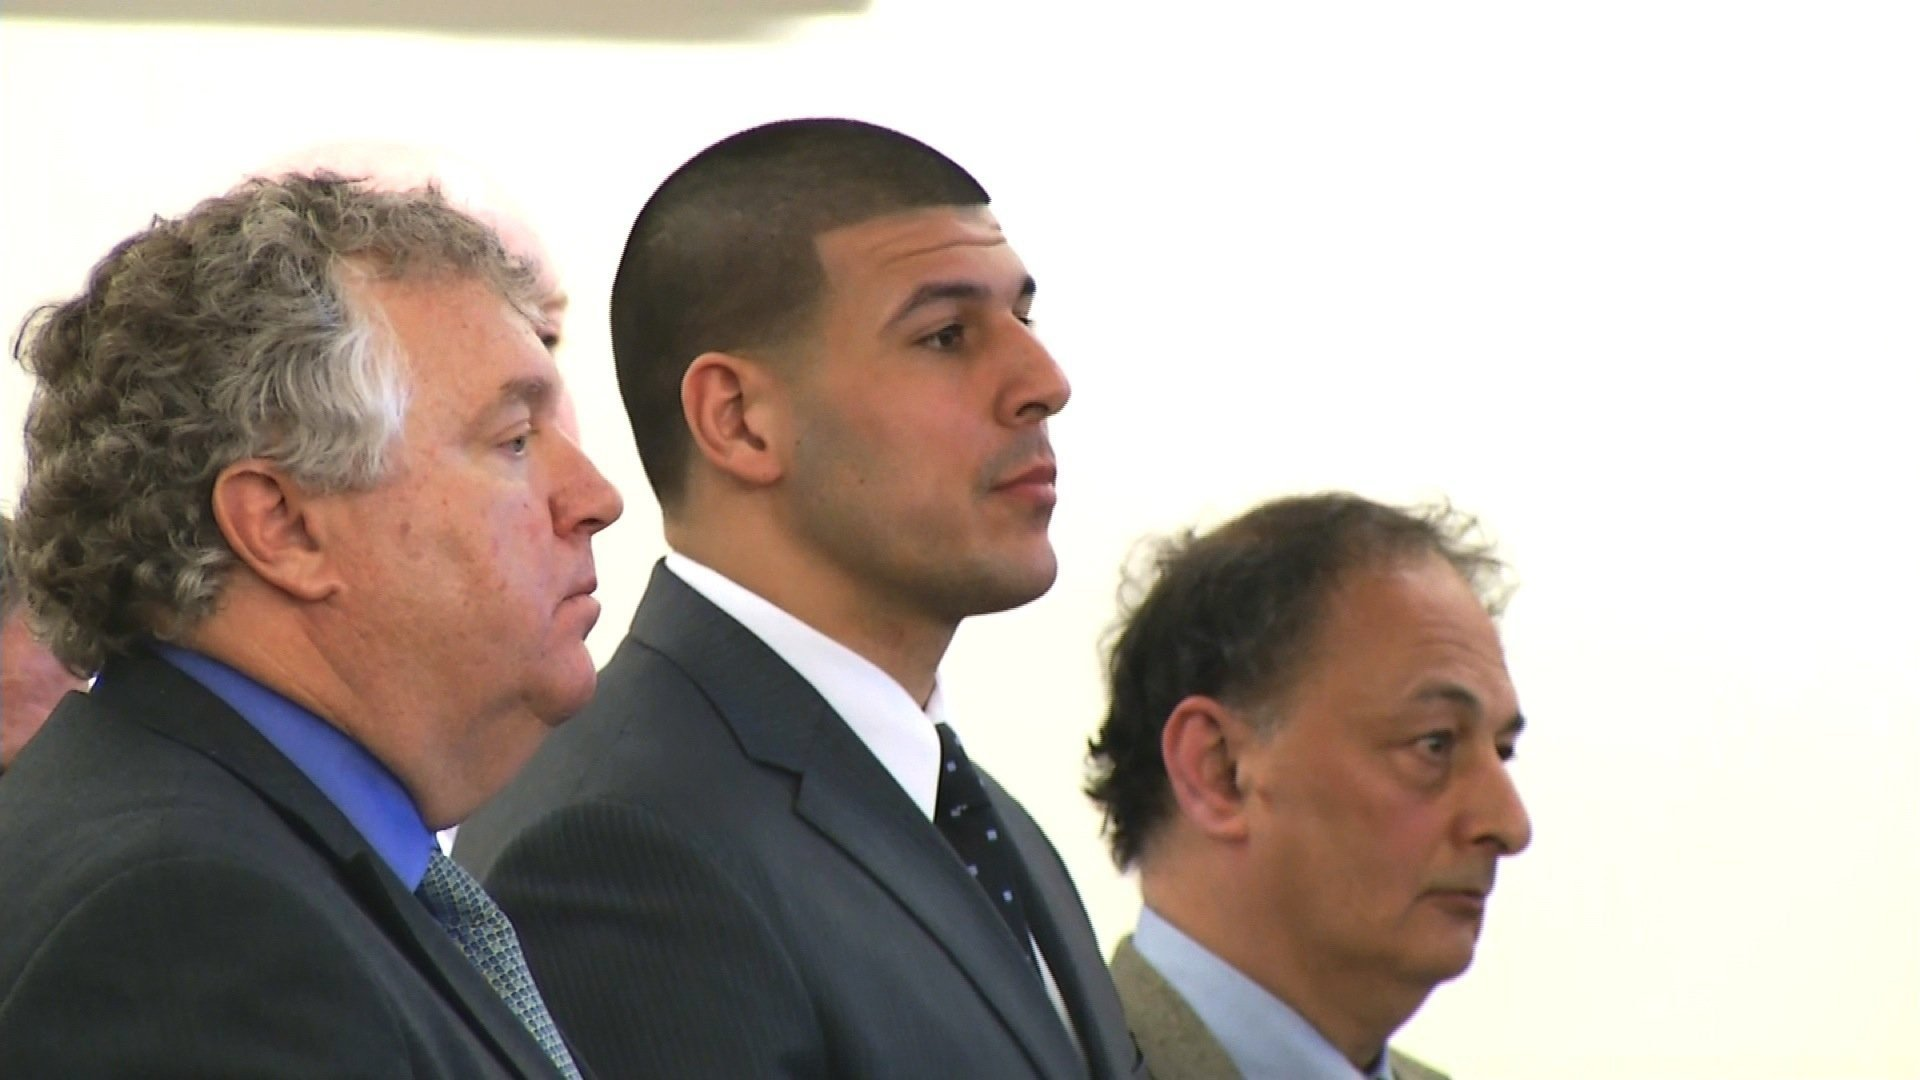 Aaron Hernandez's Gang Affiliations Revealed In Death Report